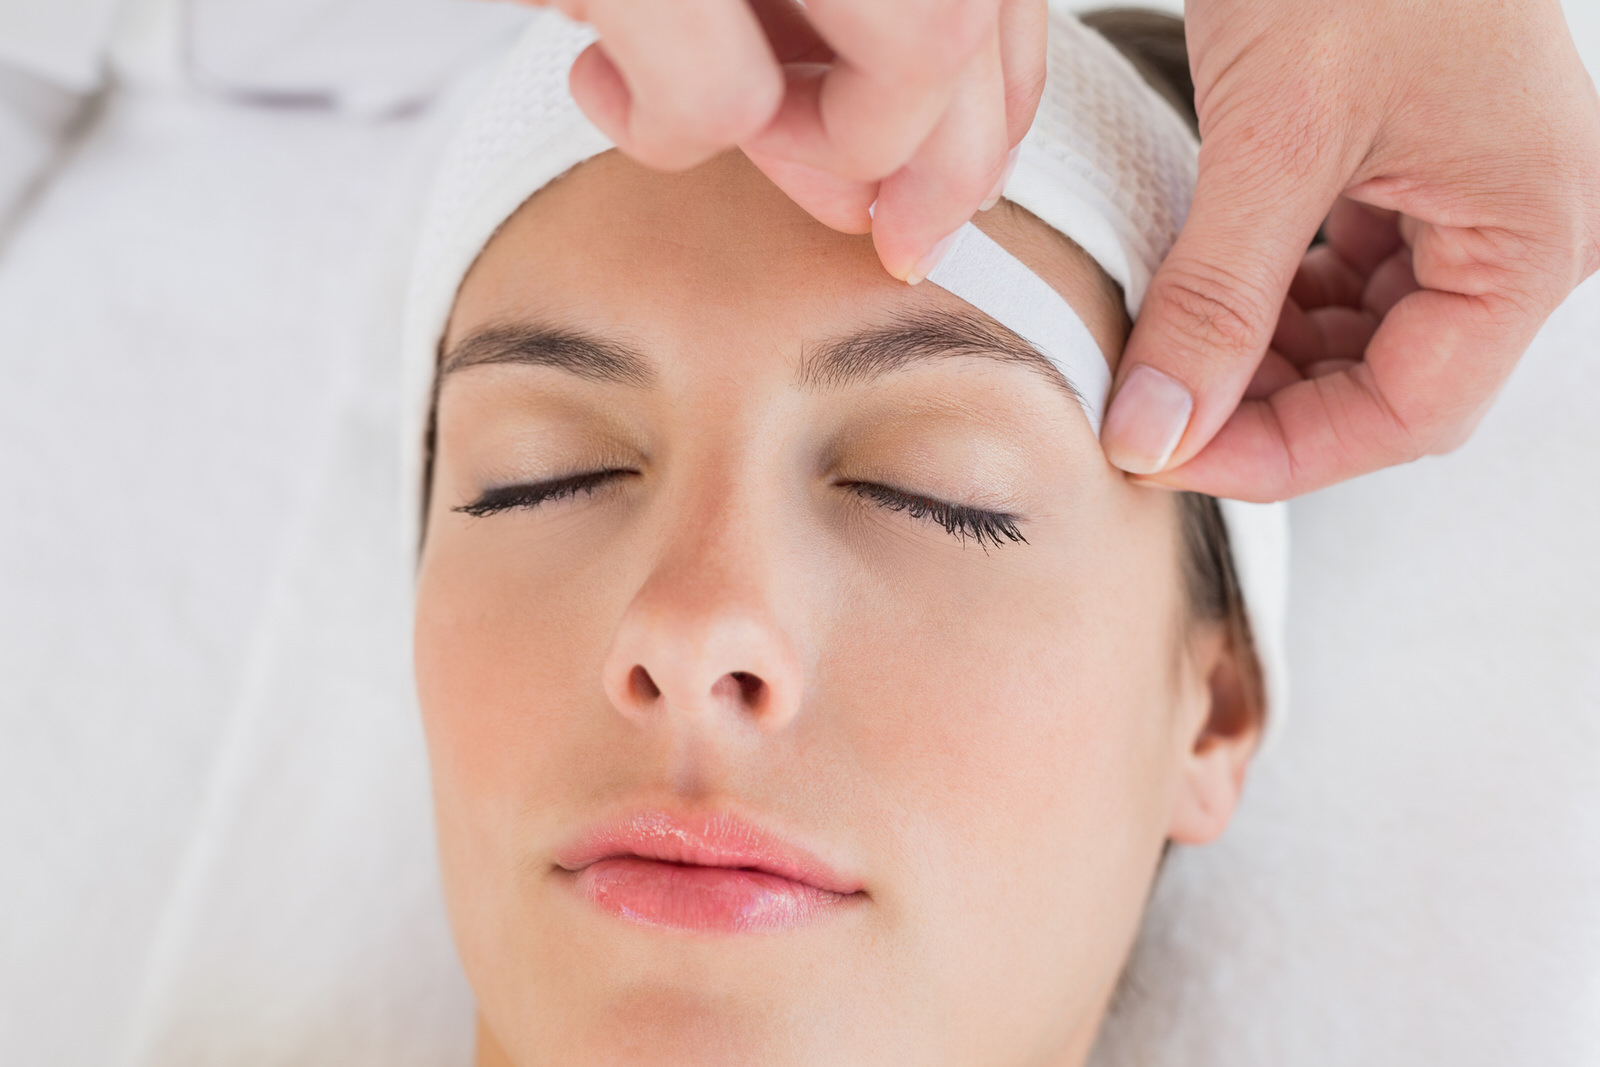 A woman gets her eyebrows waxed at a salon.